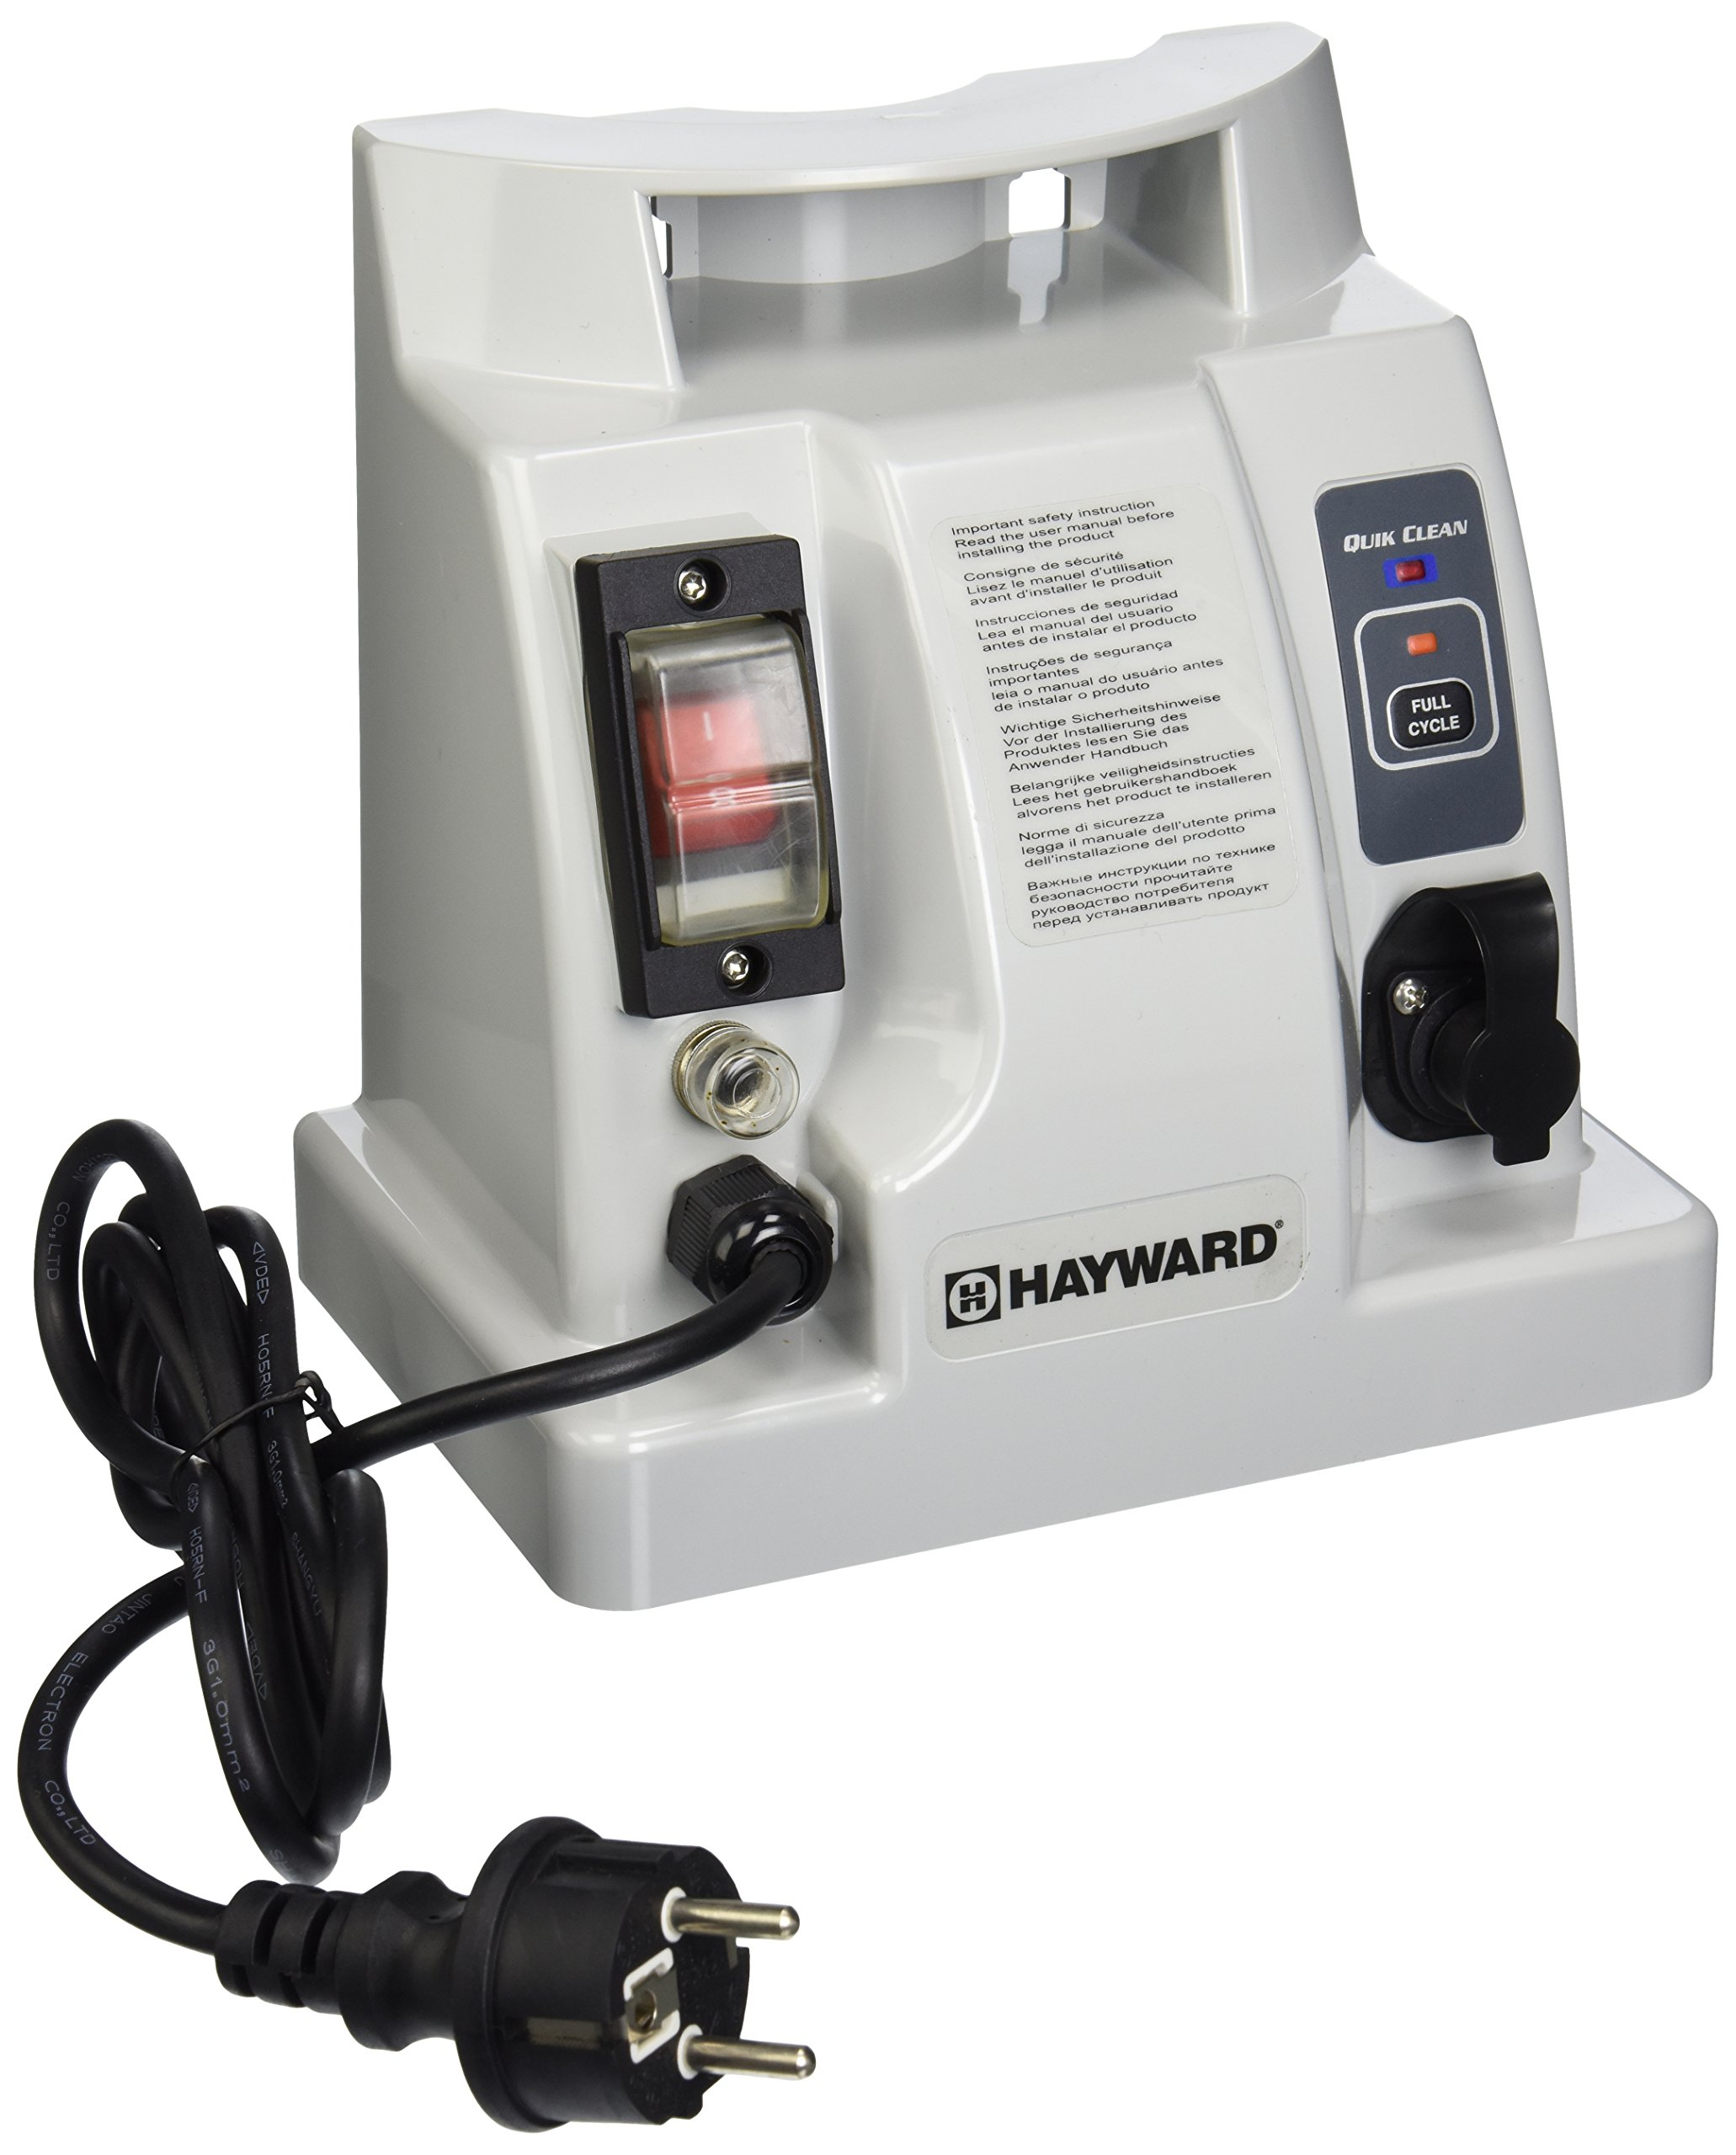 Hayward RCX97454QC 240-volt A/C Power Supply Replacement for Hayward TigerShark Quick Clean Robotic Pool Cleaner